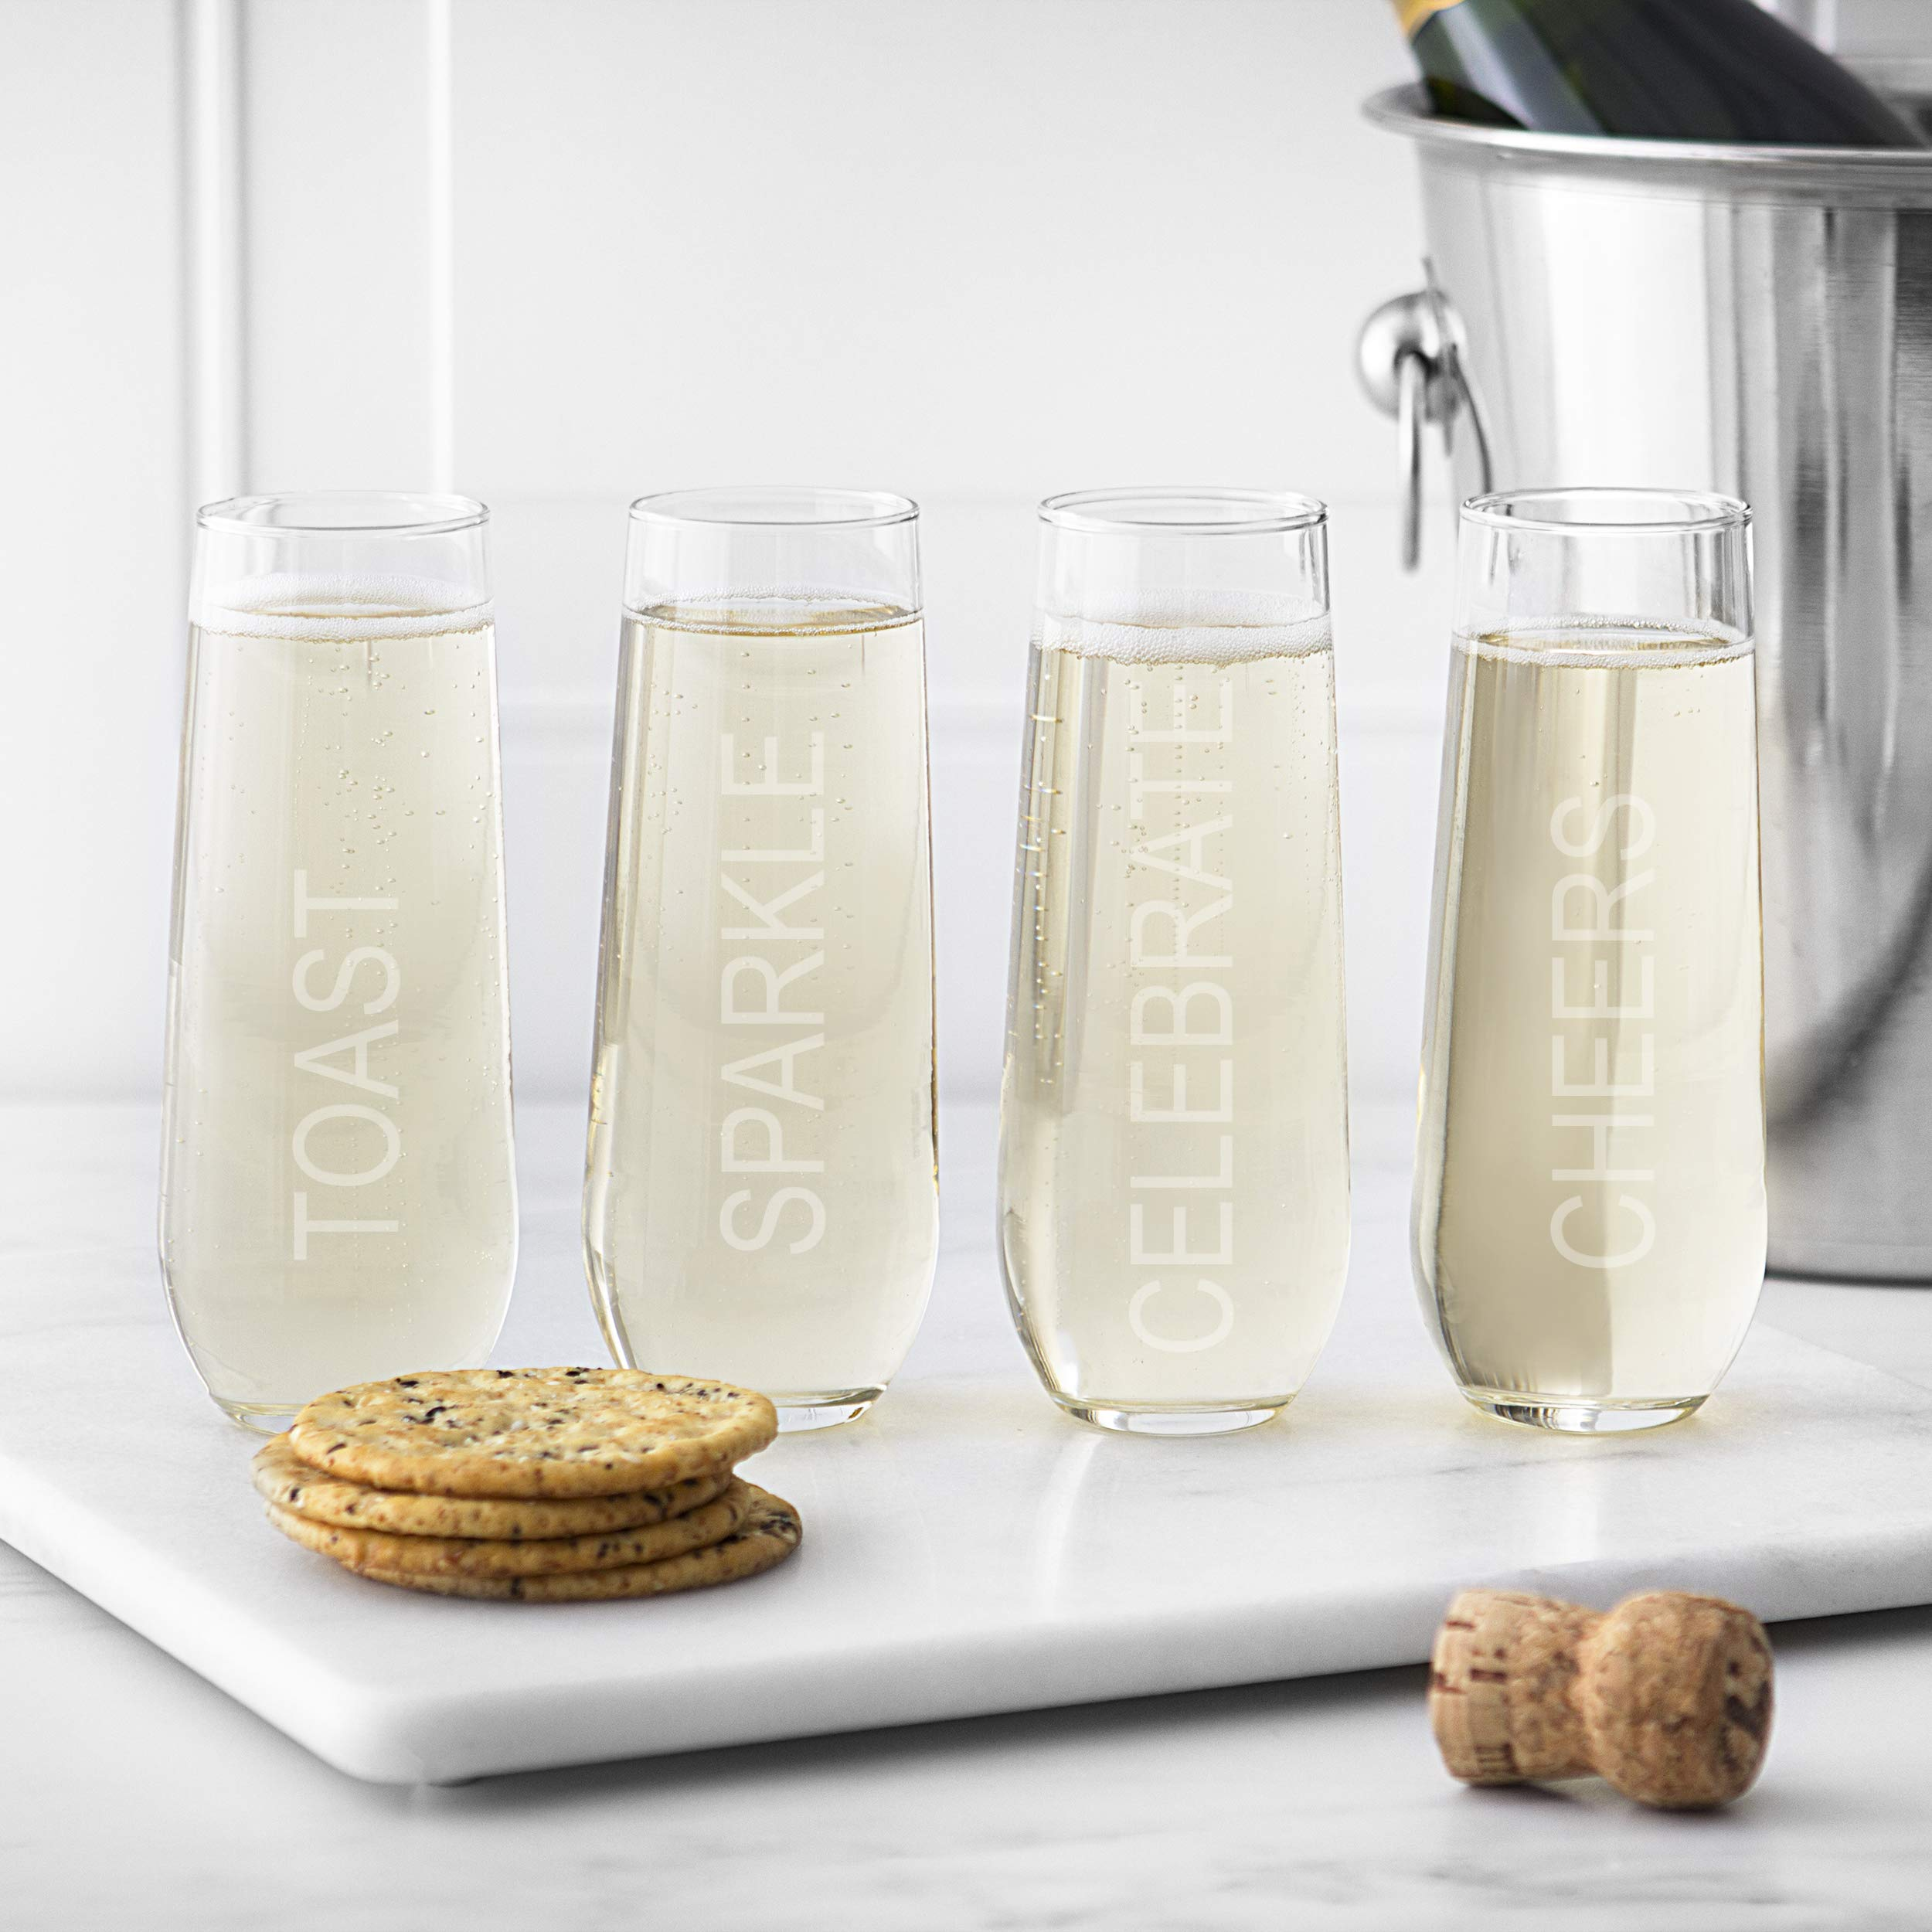 Cathy's Concepts Celebrate Stemless Champagne Flutes - Silver Engraving, 4 Celebratory Sayings, 4-Glass Set